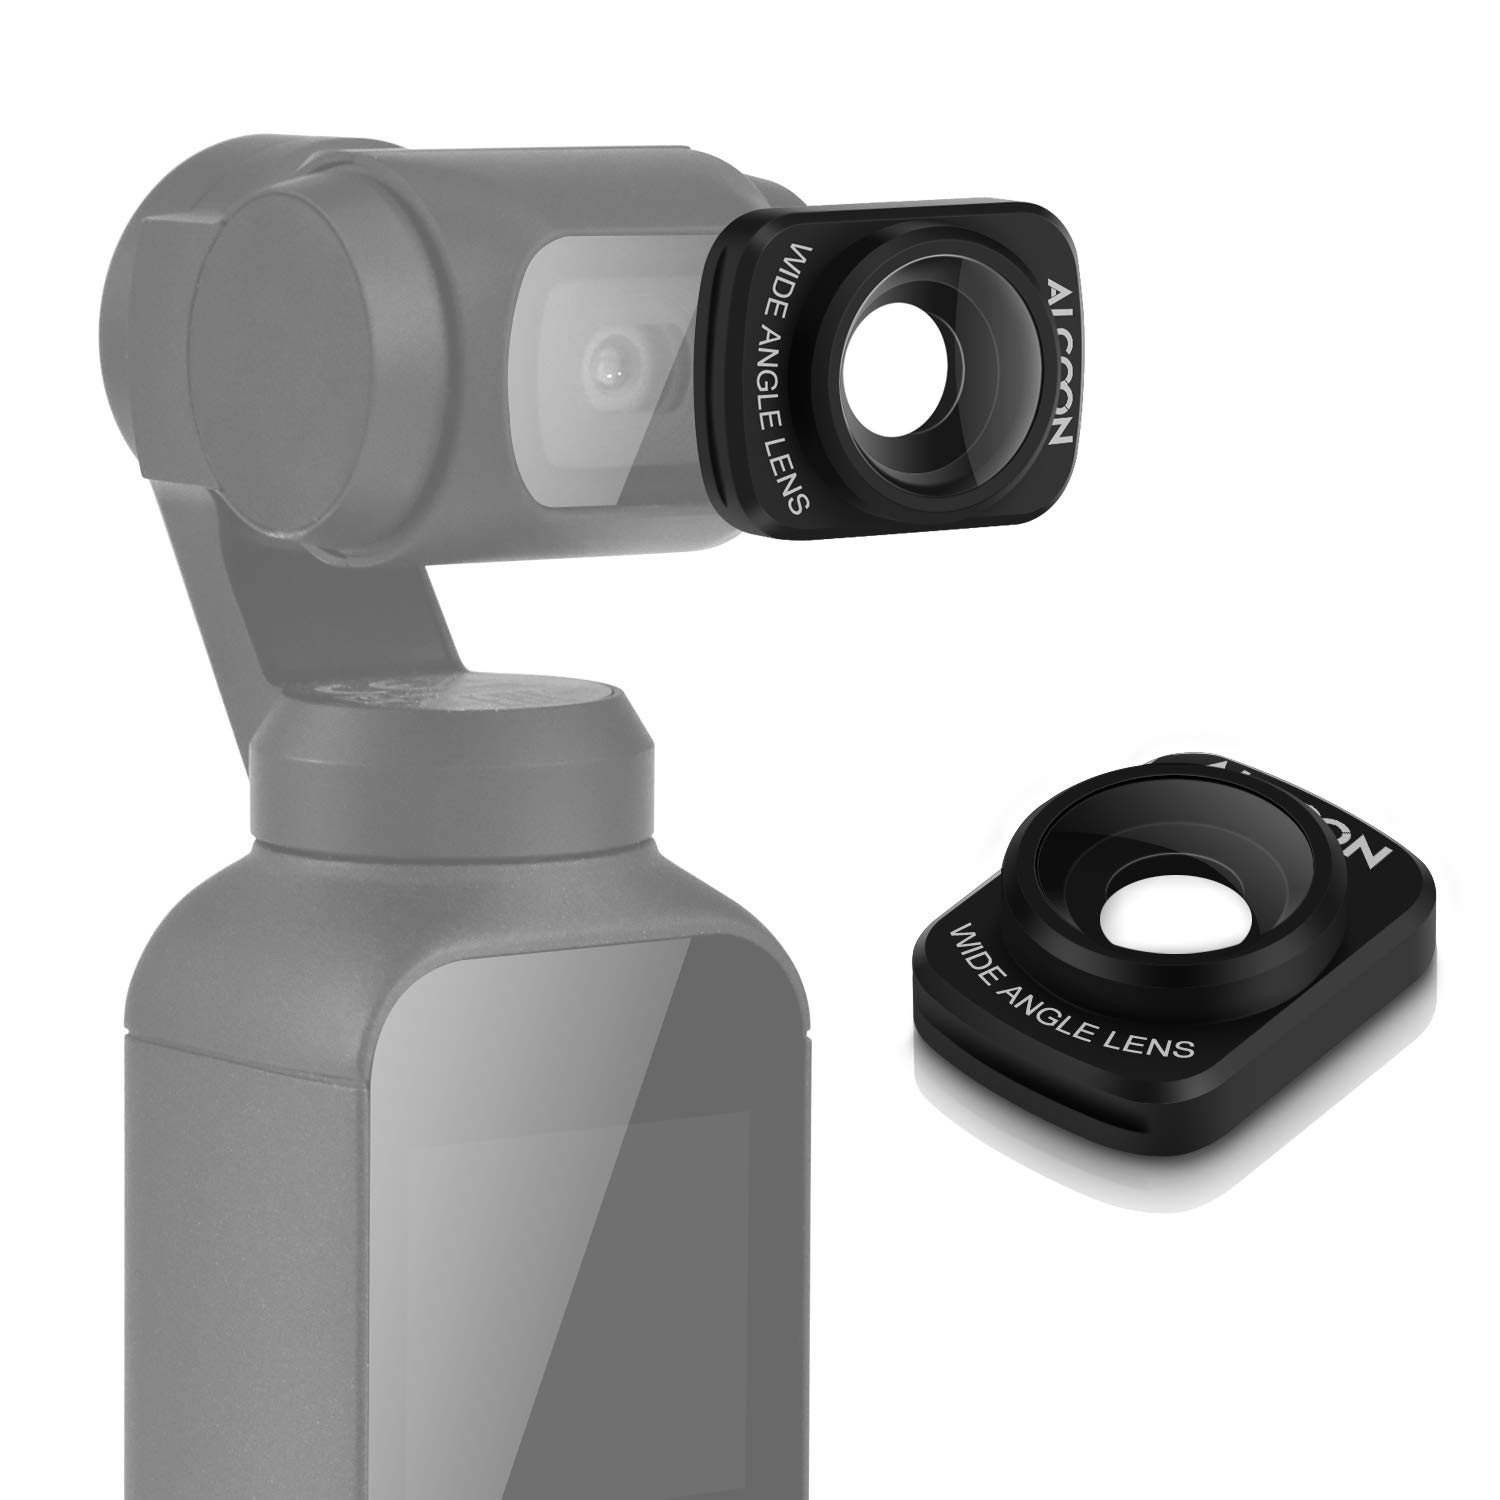 Alcoon Wide Angle Lens for DJI OSMO Pocket 18MM Magnetic Structure Design Wide-Angle Camera Lens Osmo Pocket Accessories by Alcoon